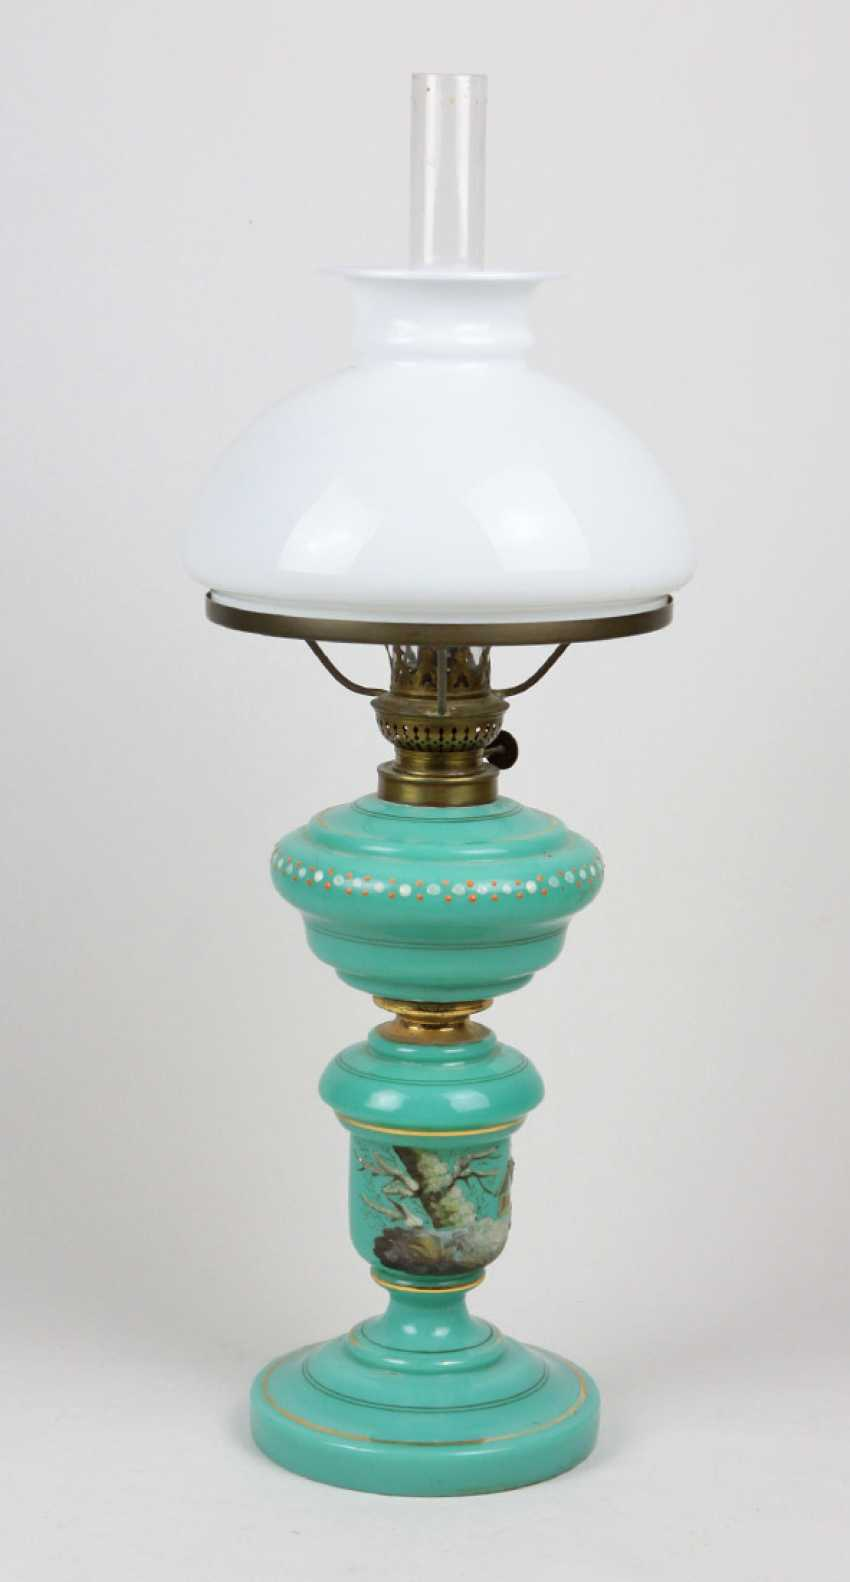 Kerosene lamp 1880 - photo 1